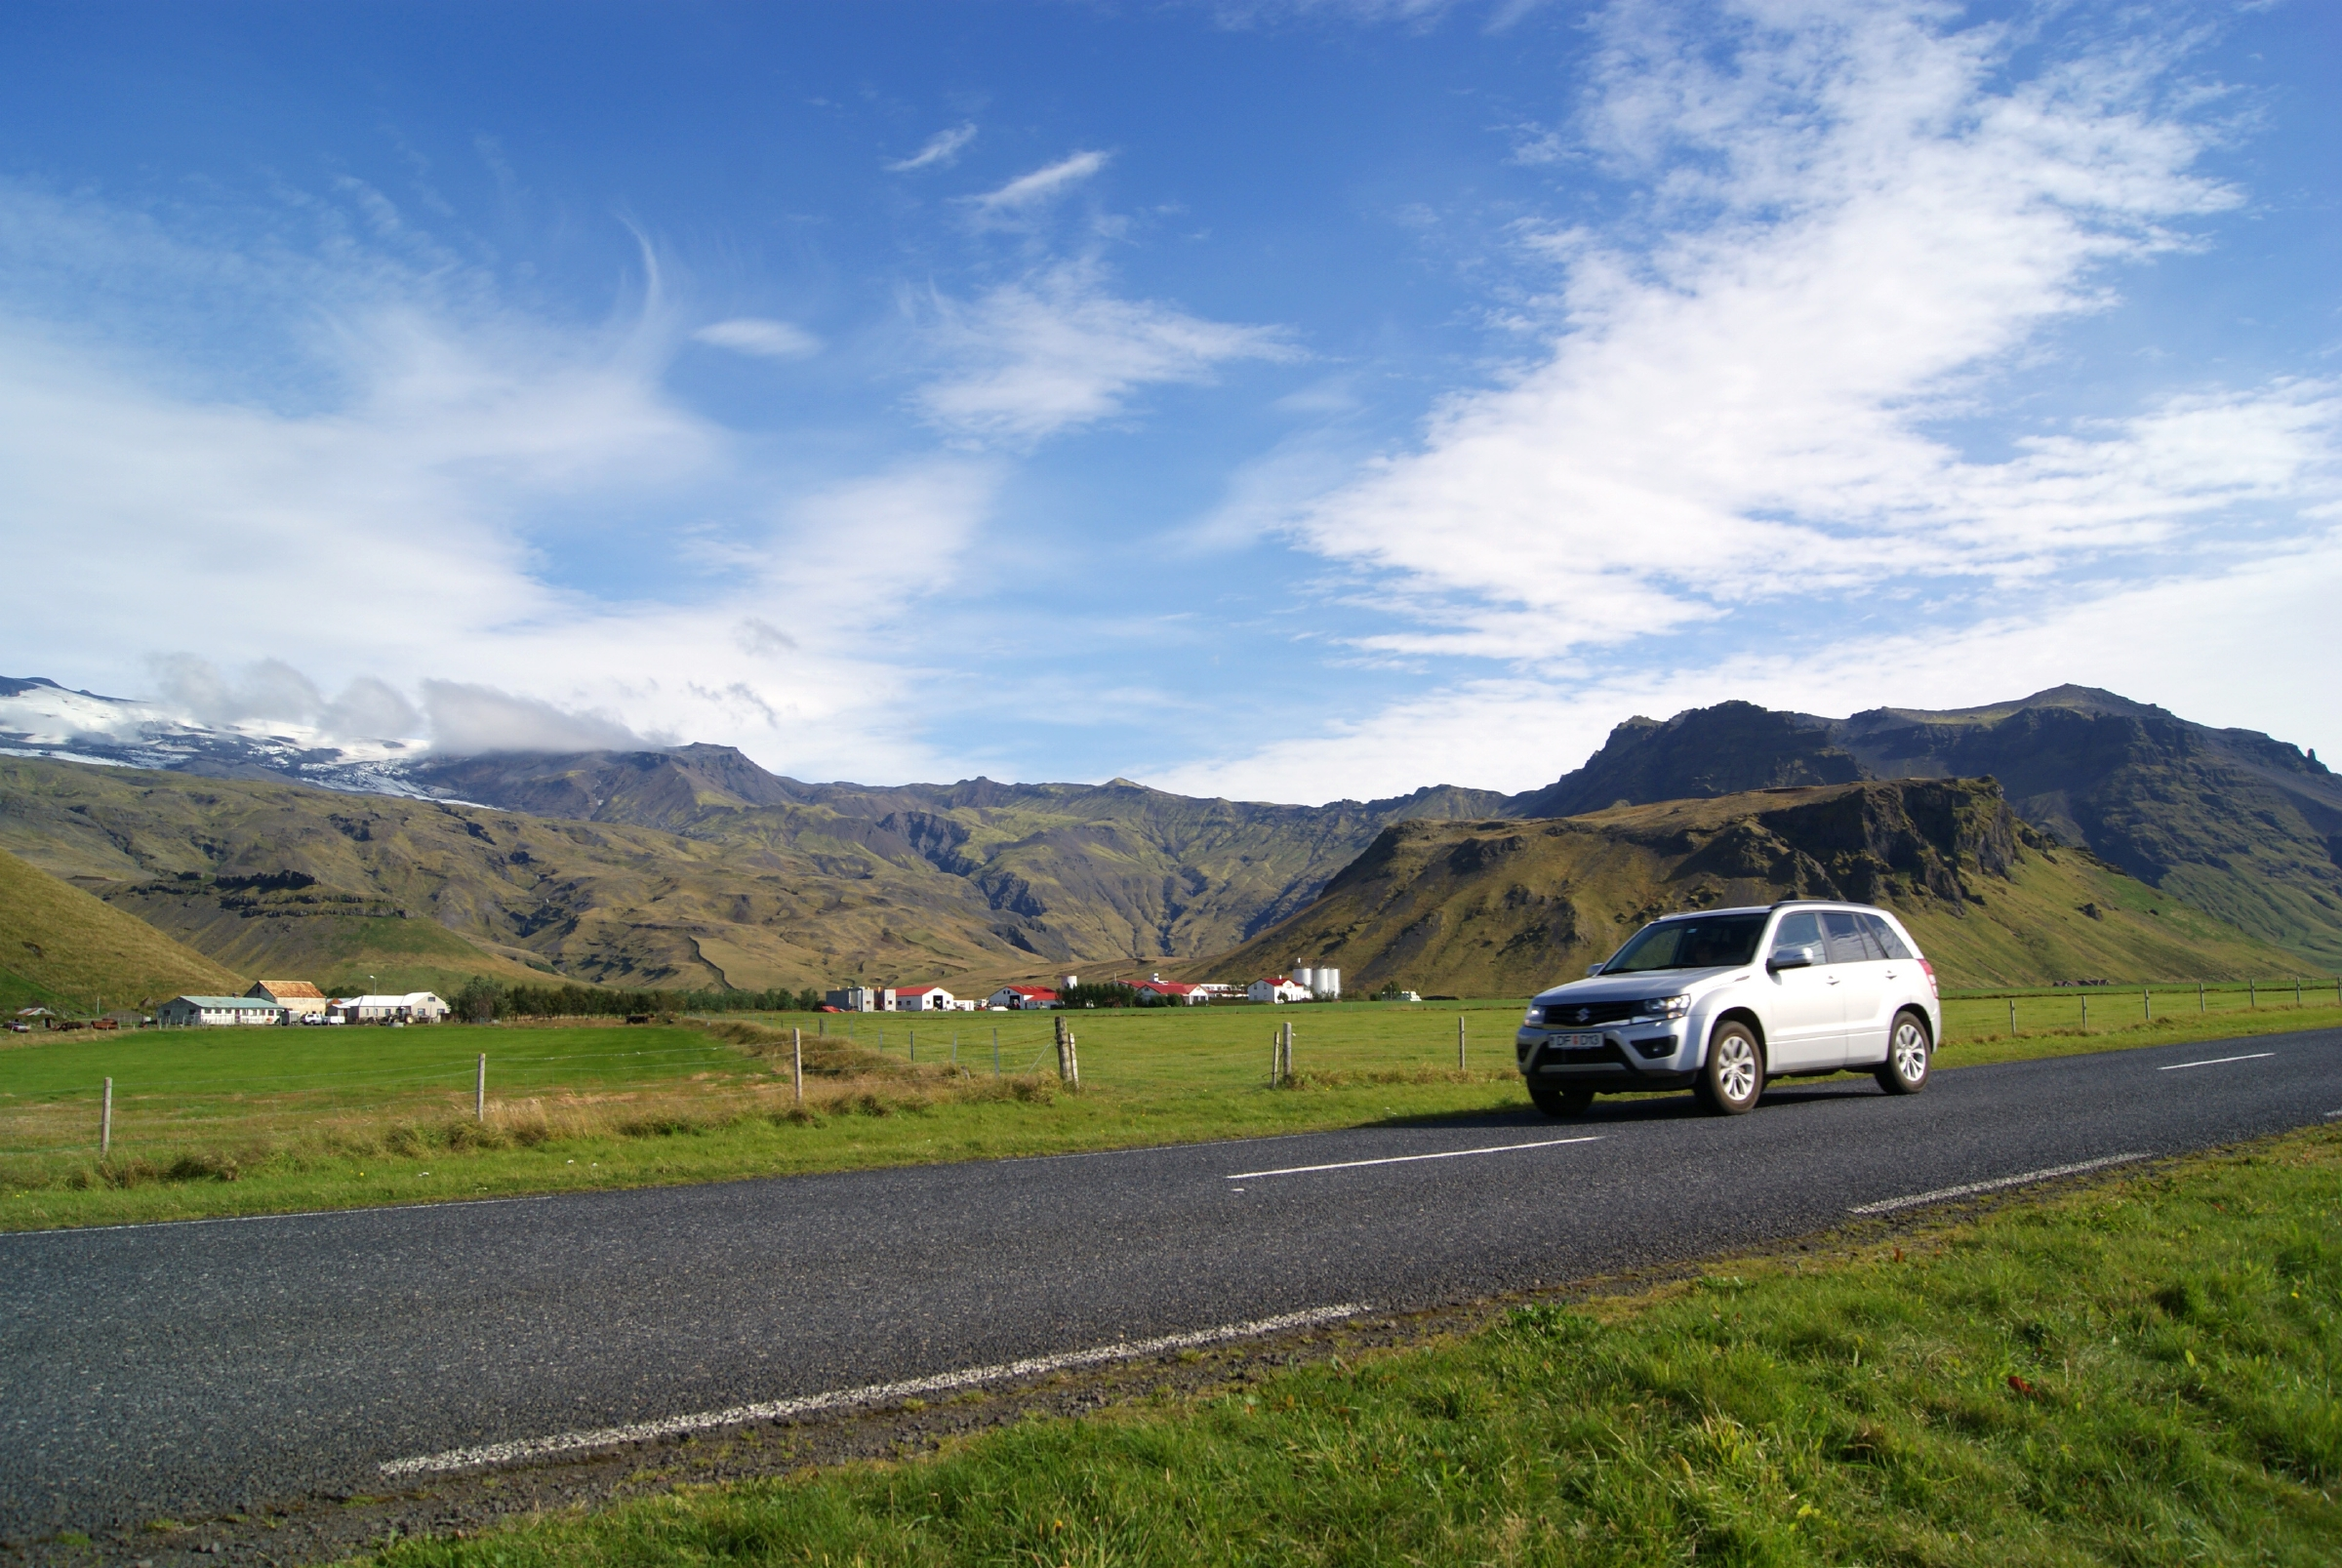 Route 1, also known as the Ring Road, in the shadow of the Eyjafjallajökull volcano. Image: Heather Carswell/Lonely Planet